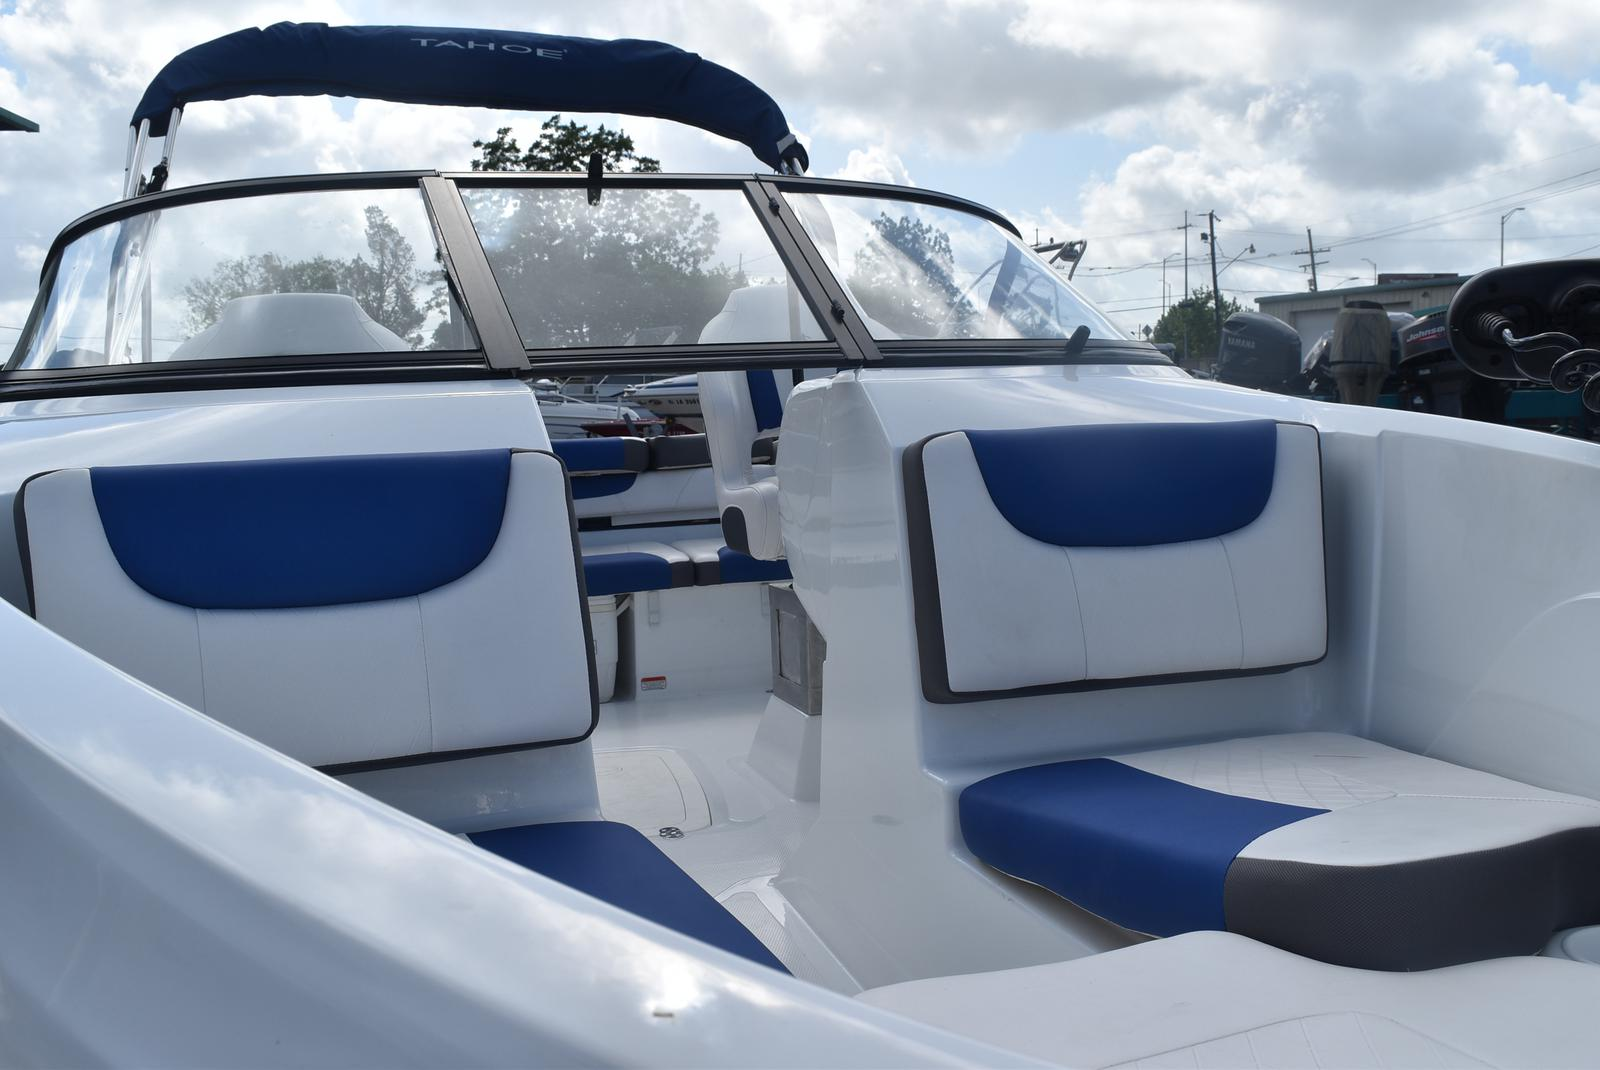 New  2019 Tahoe Boats Fish and Ski in Marrero, Louisiana